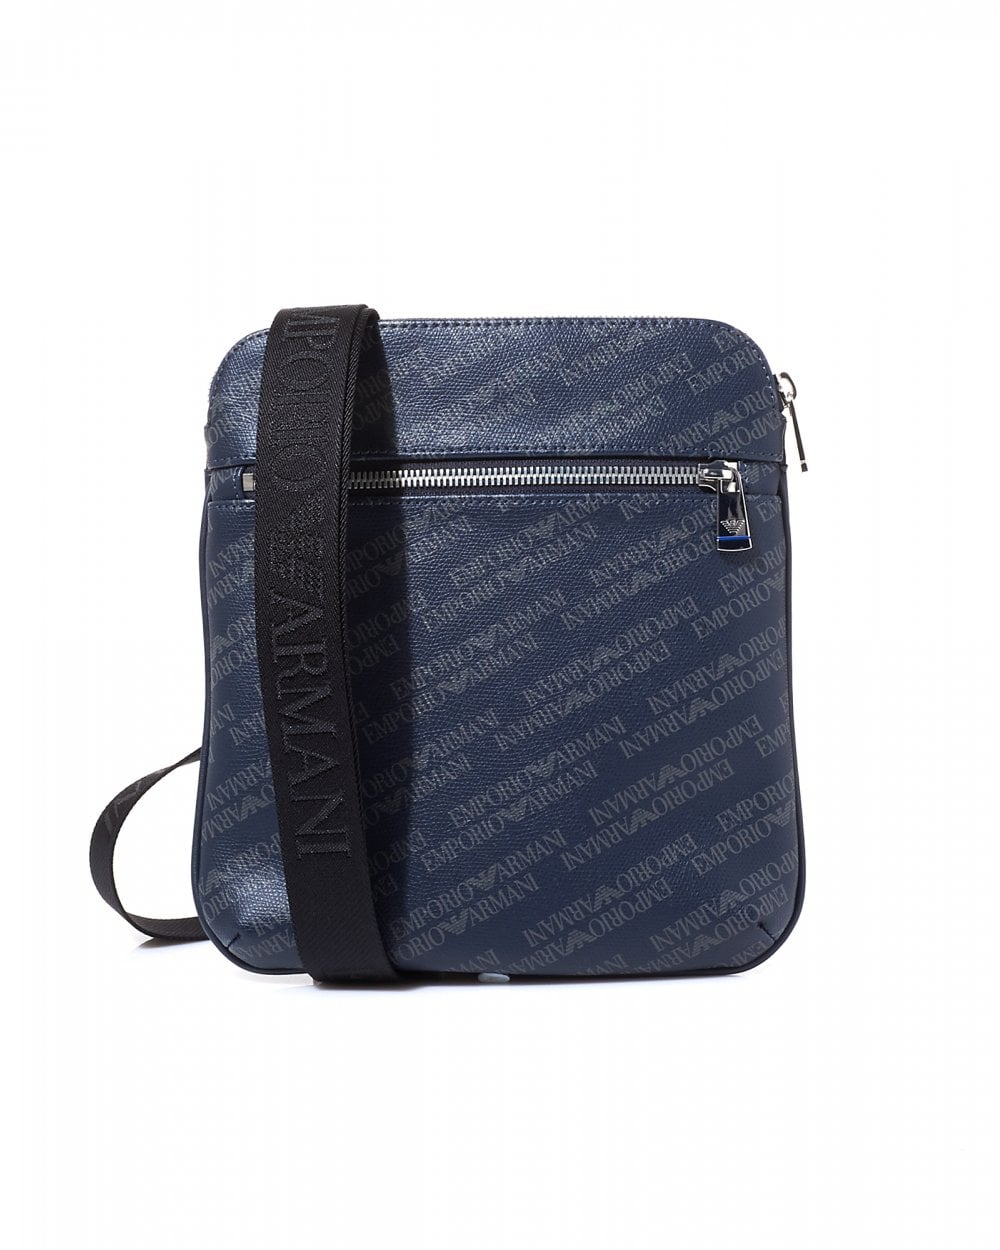 Over Stash Crossbody Navy Bag Logo Emporio Armani Mens Blue All qg0v8t1